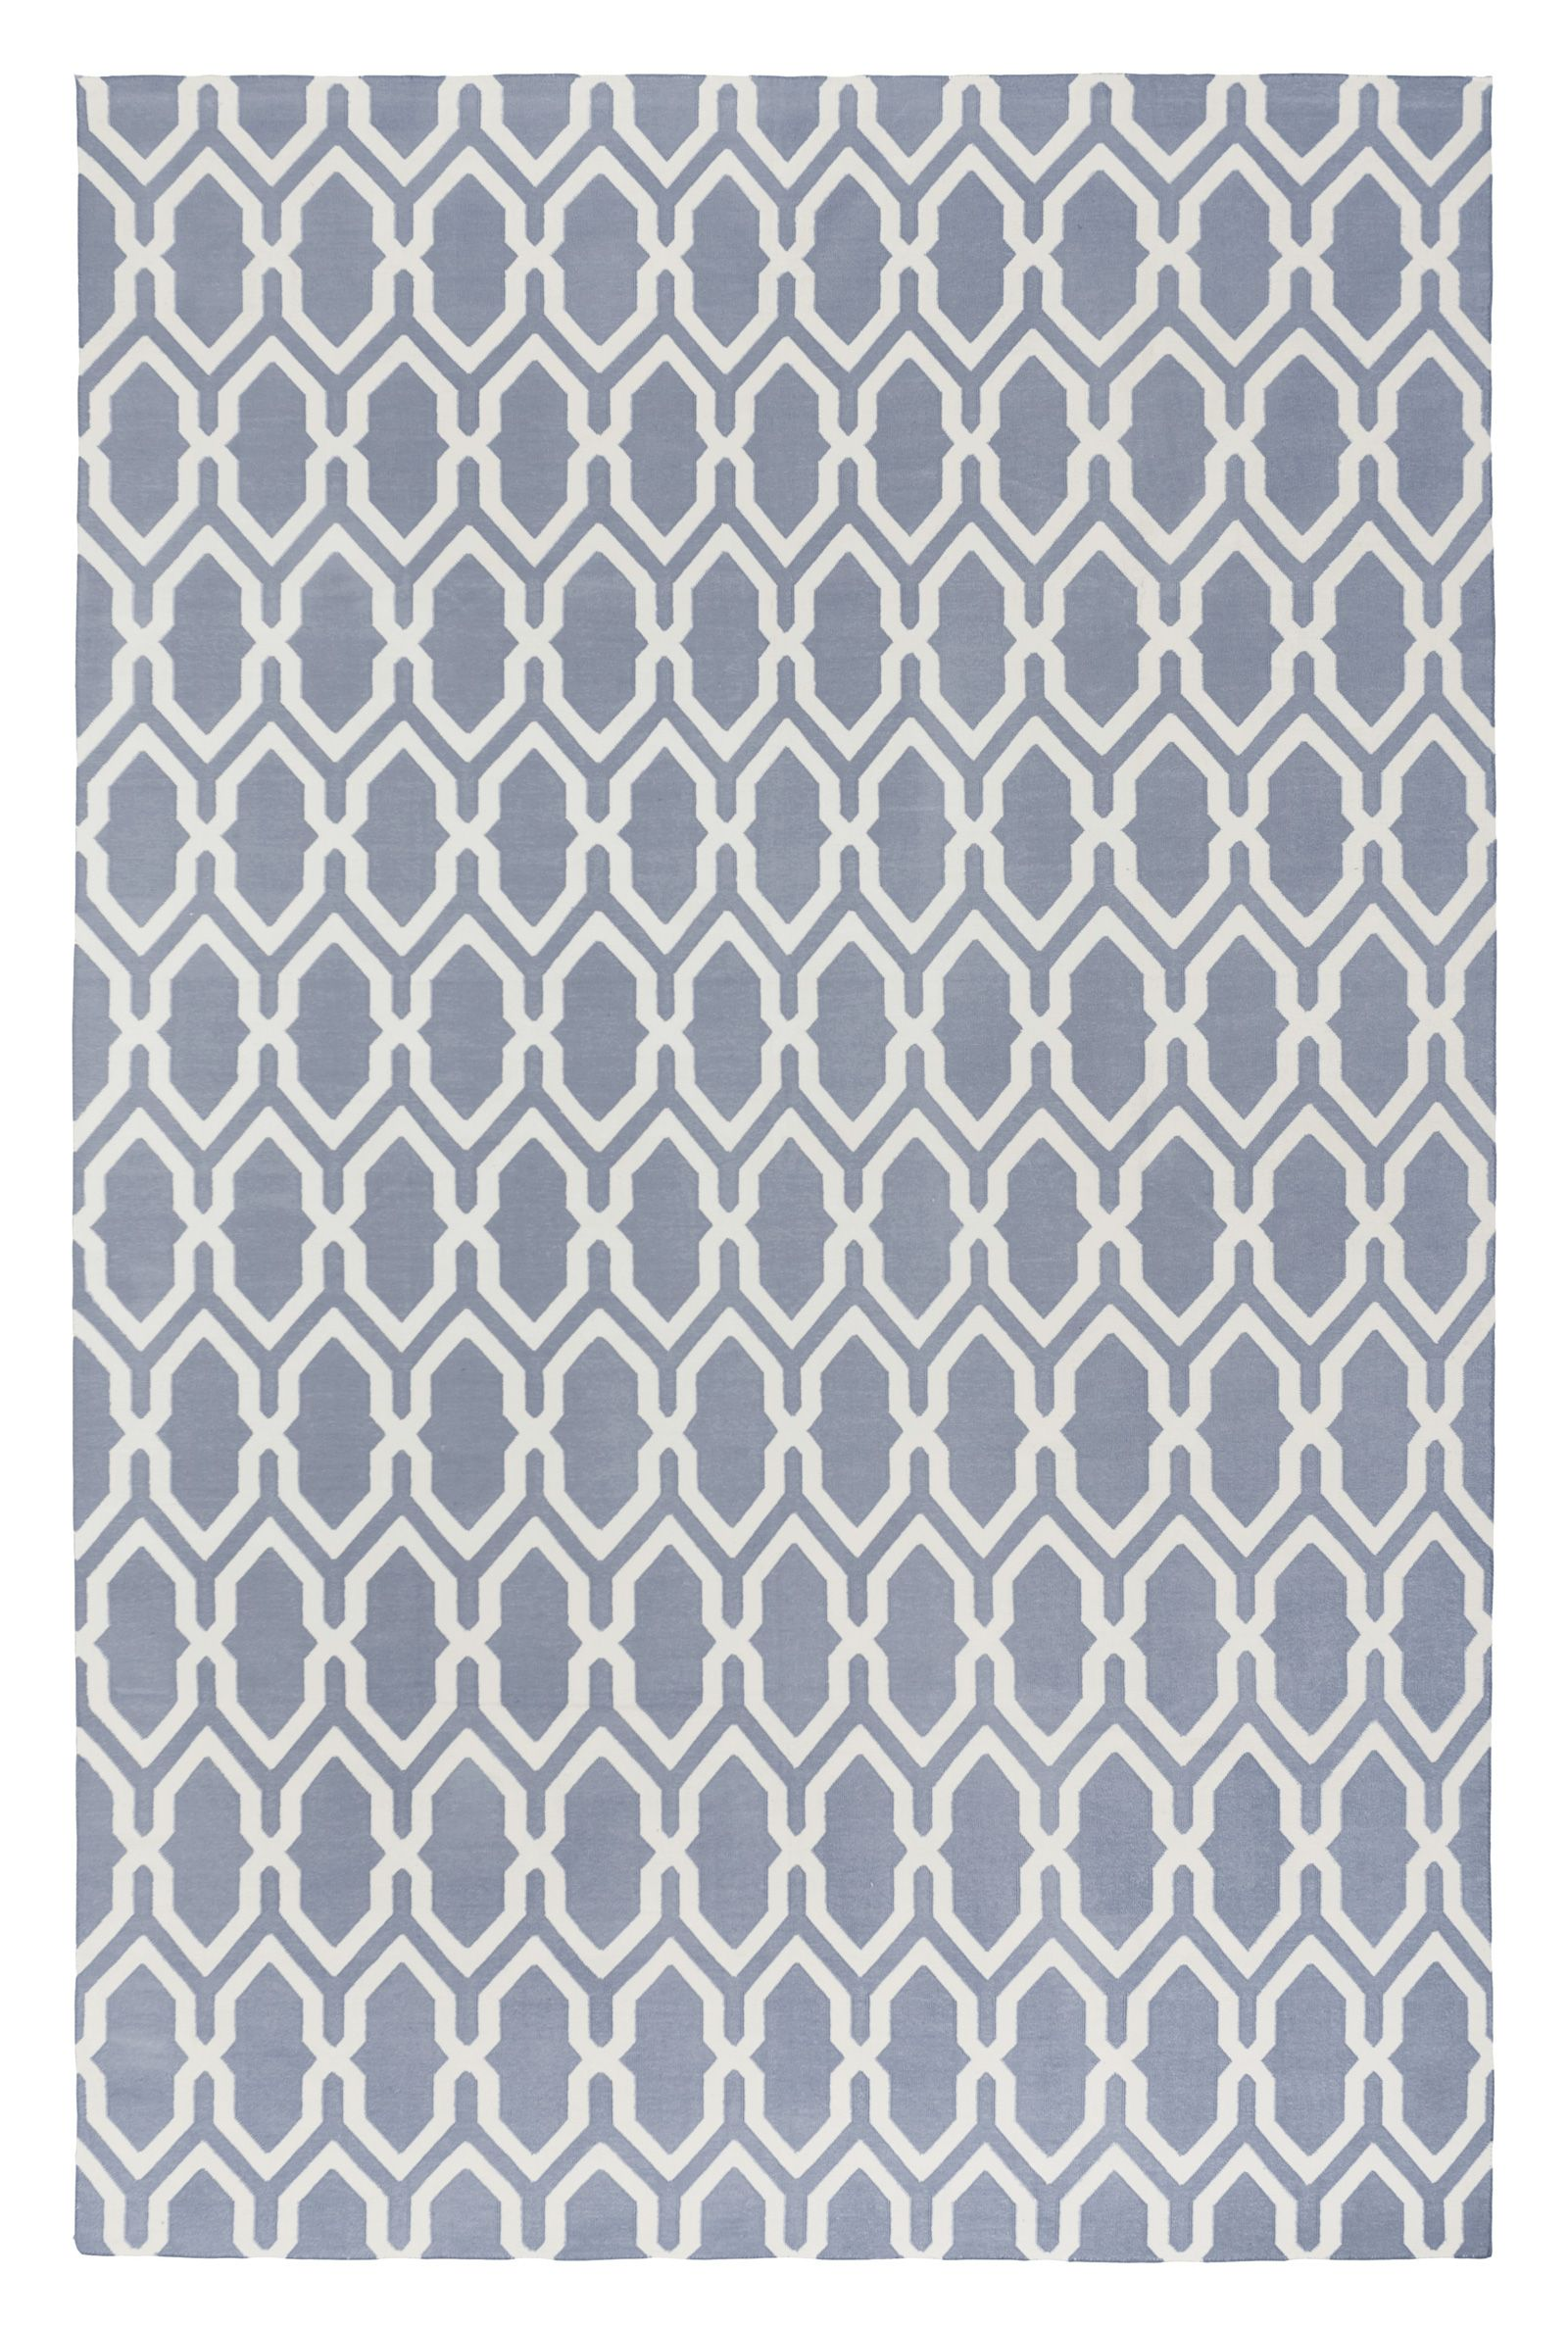 Jali Dove By The Rug Company Cotton Studio Collection